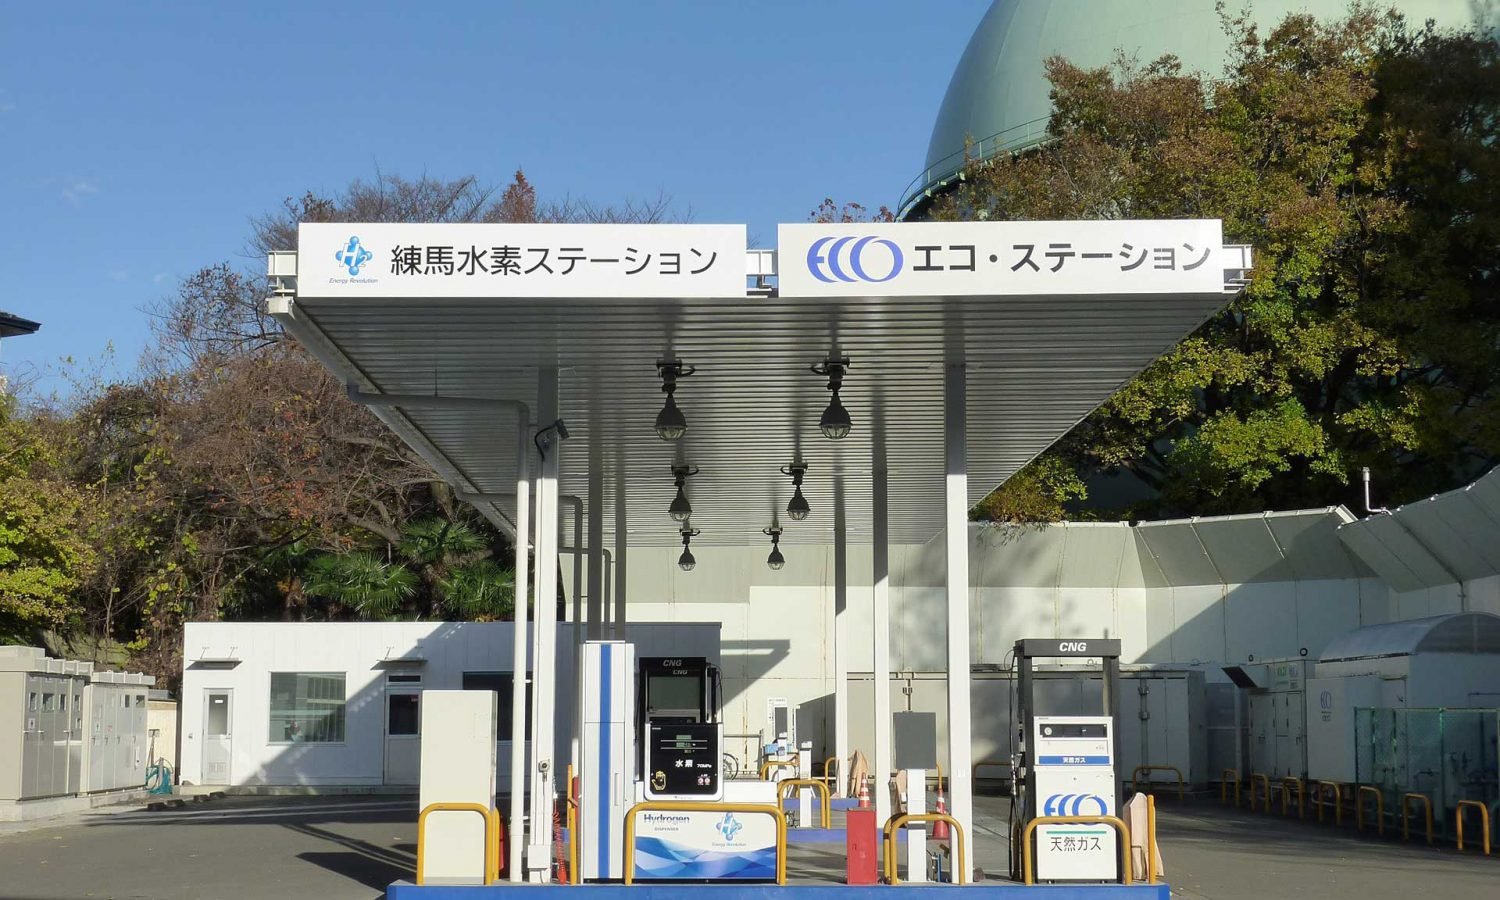 Toyota, Nissan and Honda to Jointly Support Hydrogen Station Infrastructure Development